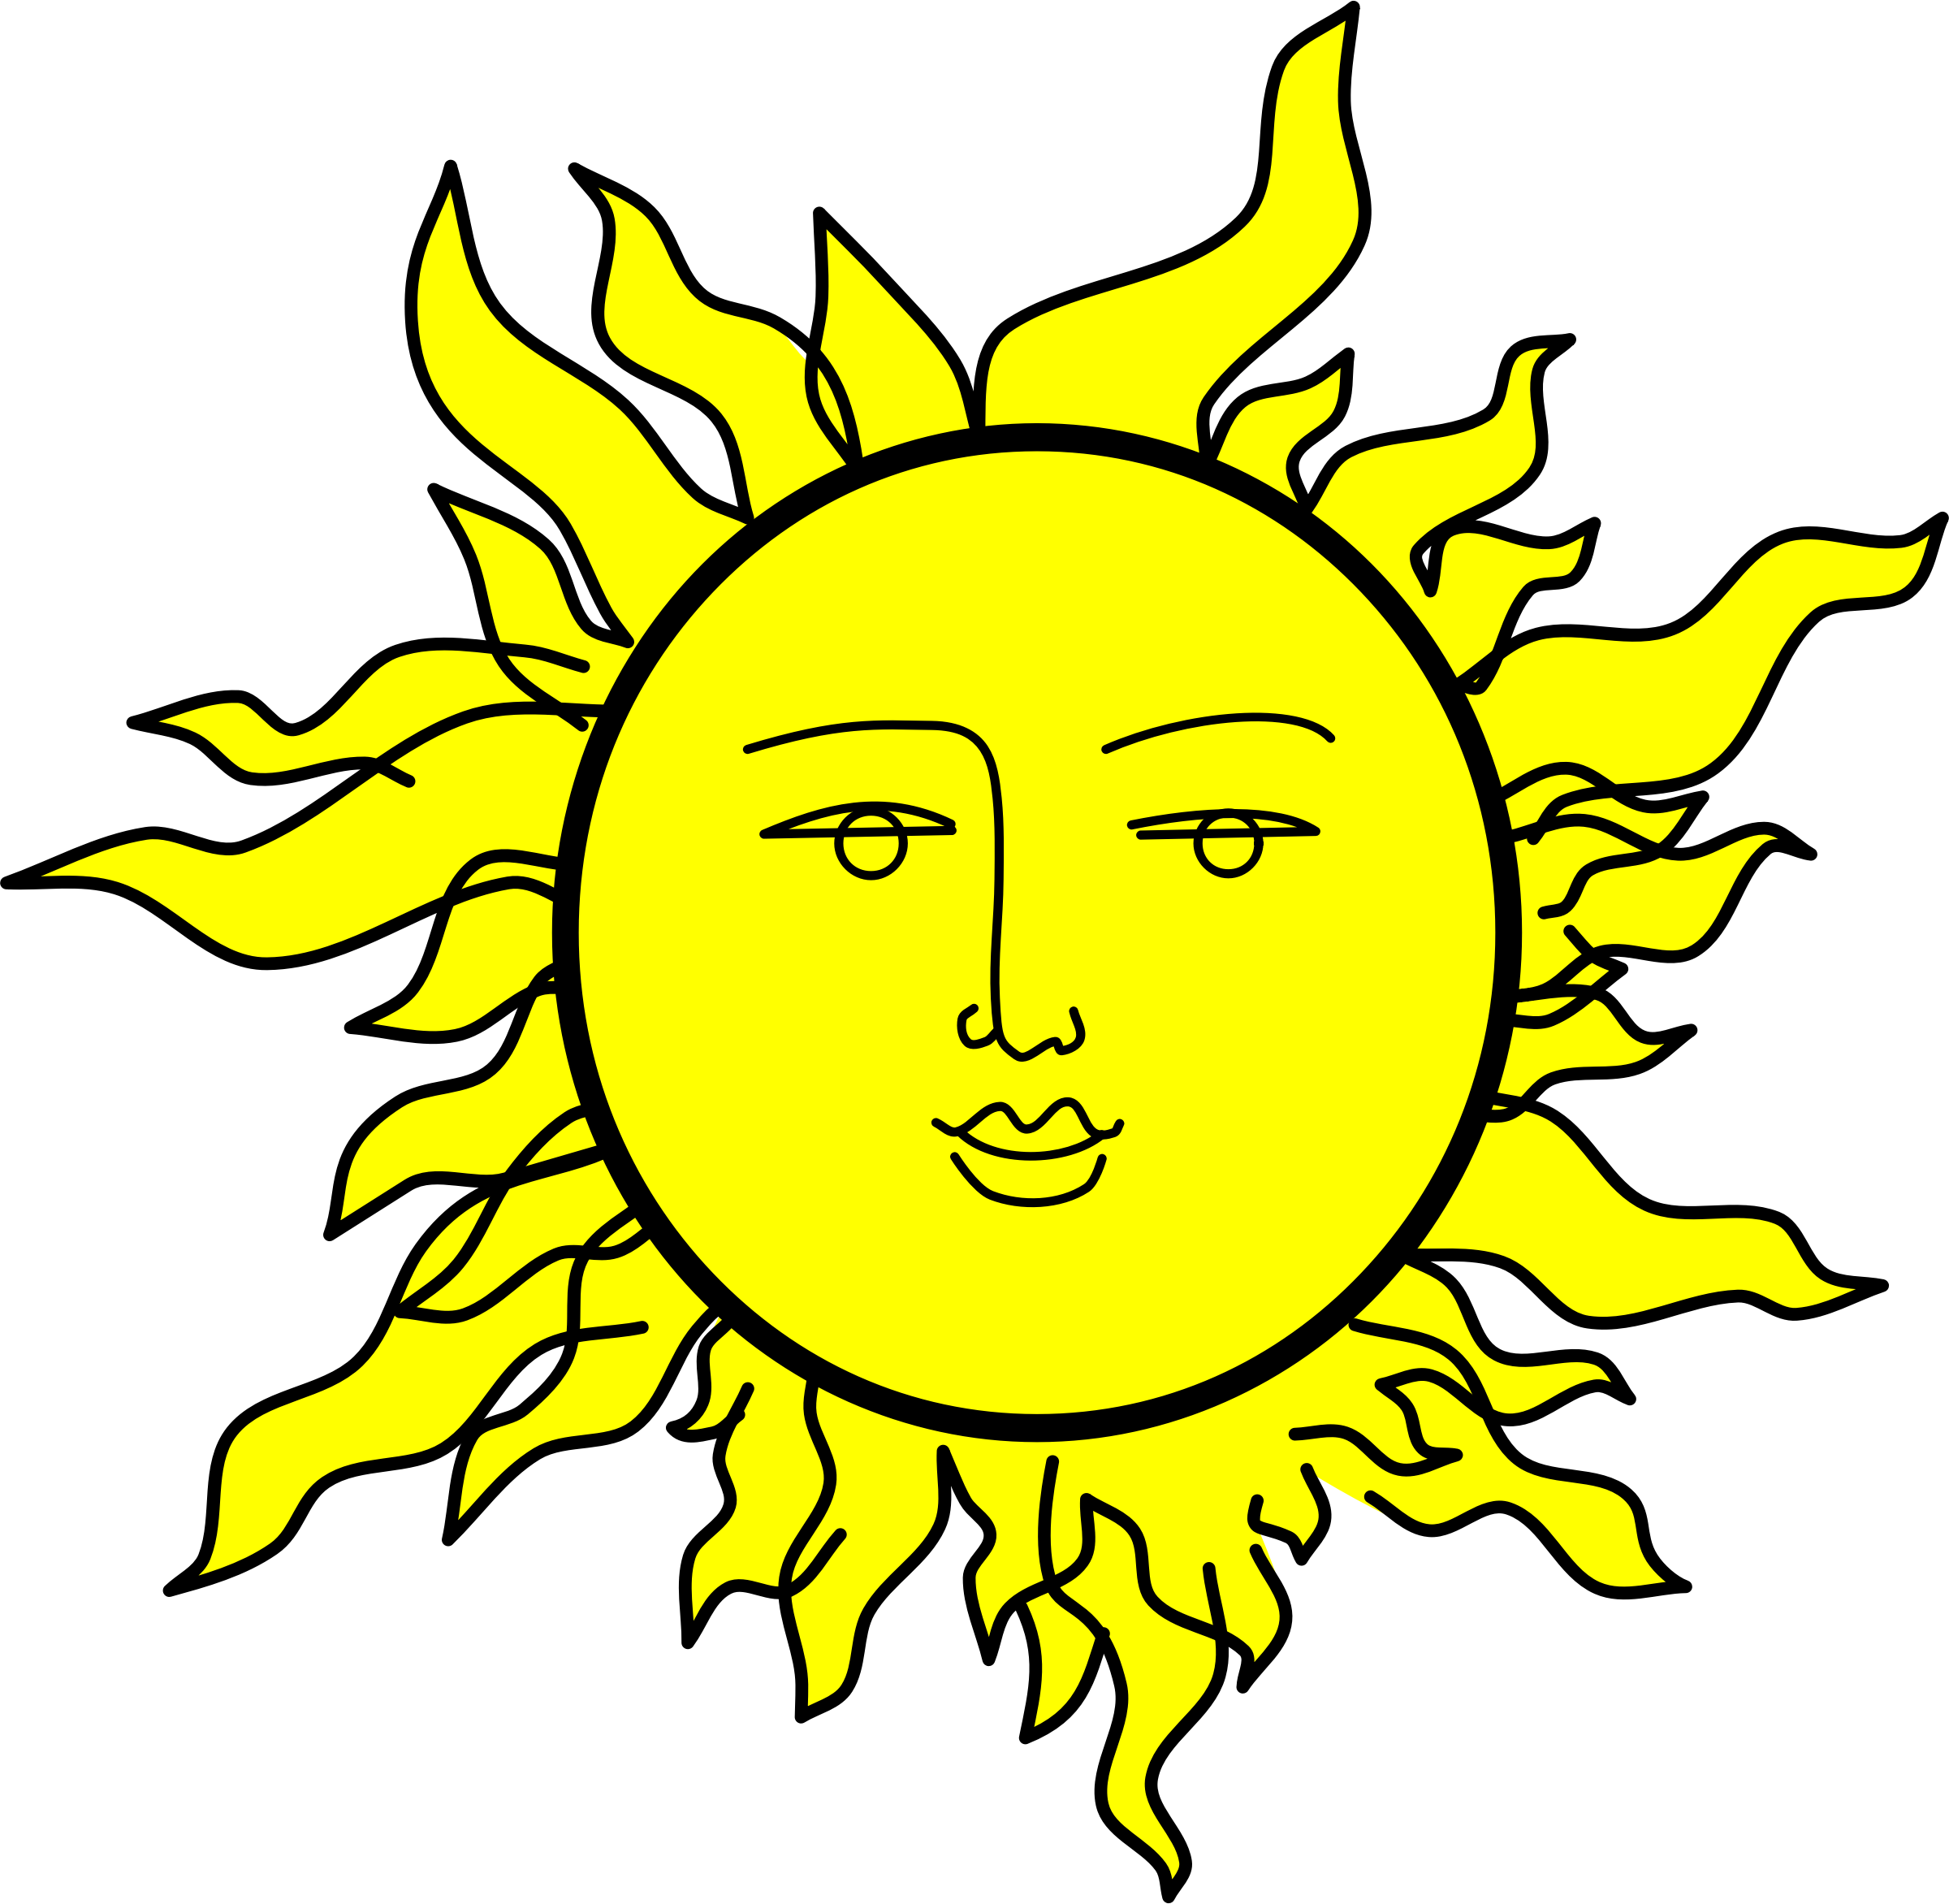 Sun with a face by Rones by rones